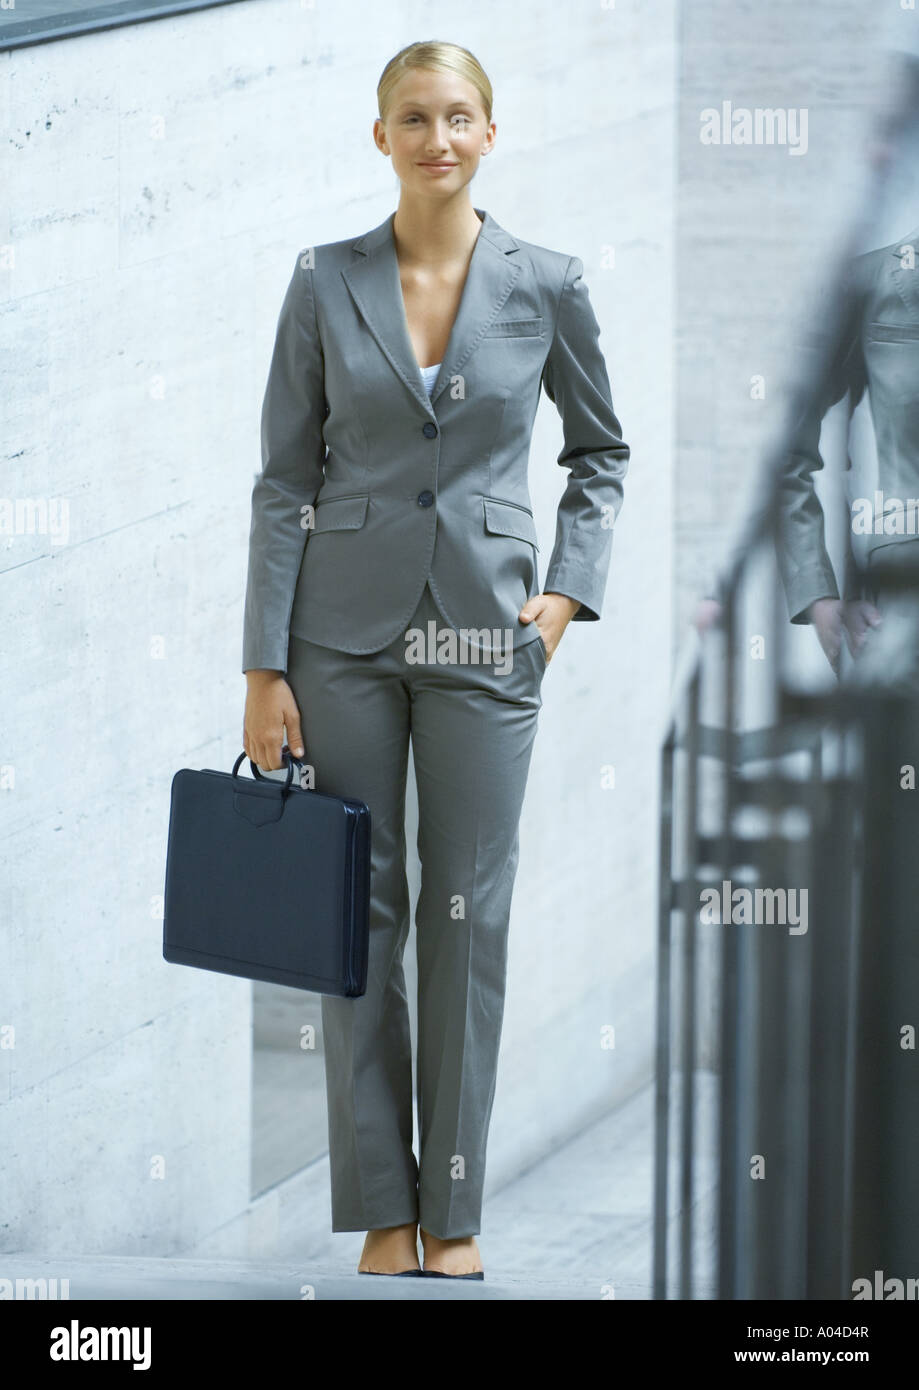 Businesswoman, full length portrait - Stock Image